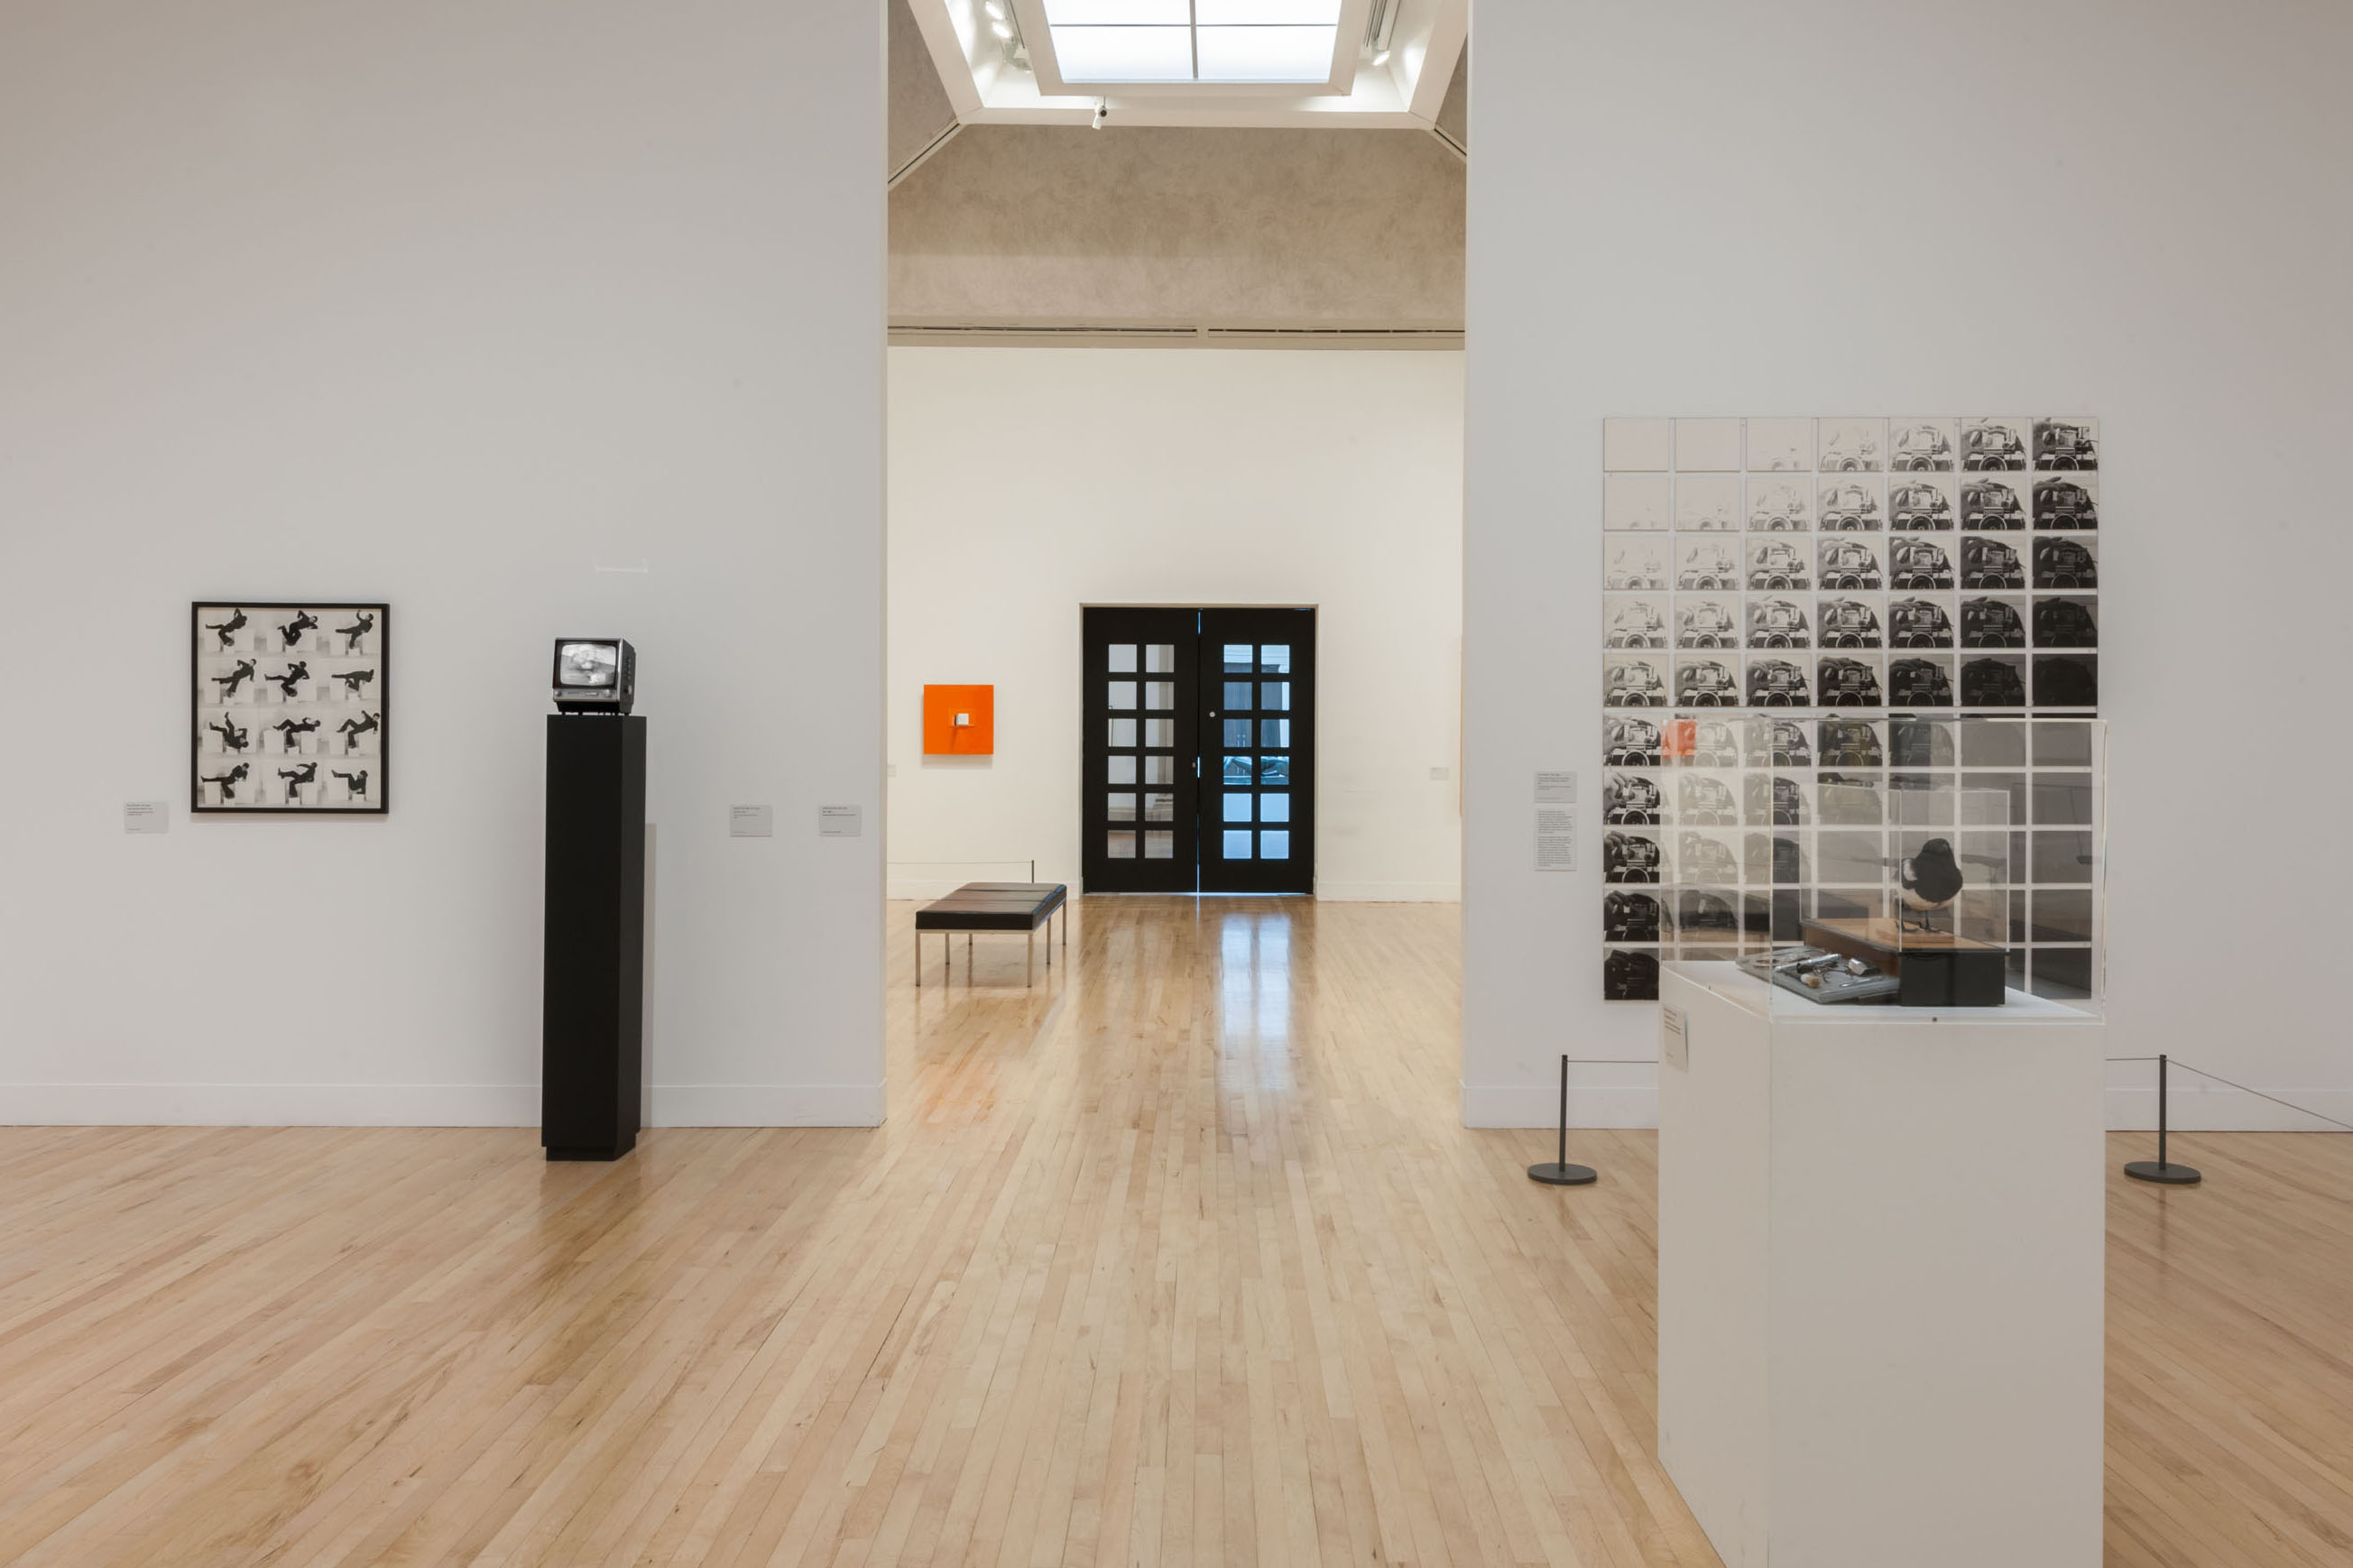 installation view Tate Britain: Stephen Partridge 'Monitor' 1974 Video, monitor, black and white Collection Tate Britain © Cultural Documents and Lucy Dawkins